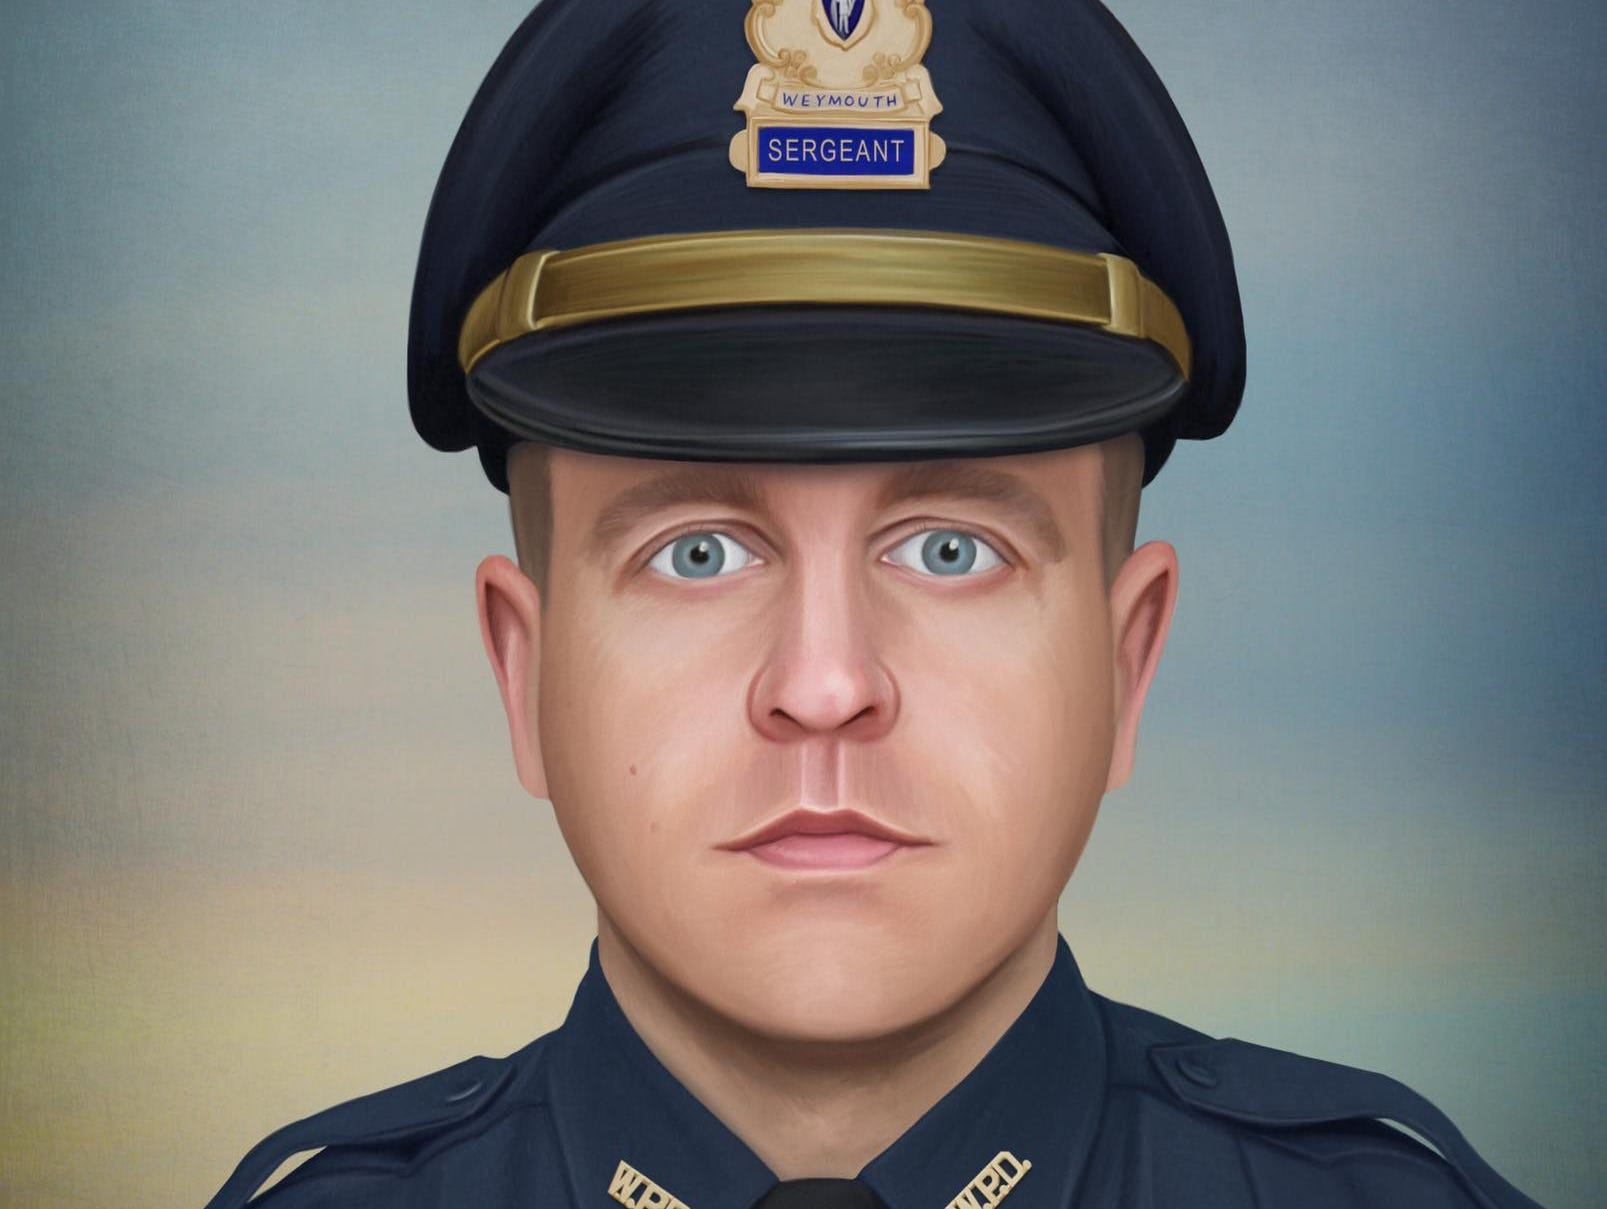 On July 15th, Weymouth (Massachusetts) Police Officer Michael Chesna, who was just finishing up his midnight to 8am tour of duty, confronted a suspect wanted for leaving the scene of an accident. The male violently assaulted Michael with a large rock, knocking him to the ground. The suspect disarmed Officer Chesna of his service weapon and murdered him.Painting by Jonny Castro Art